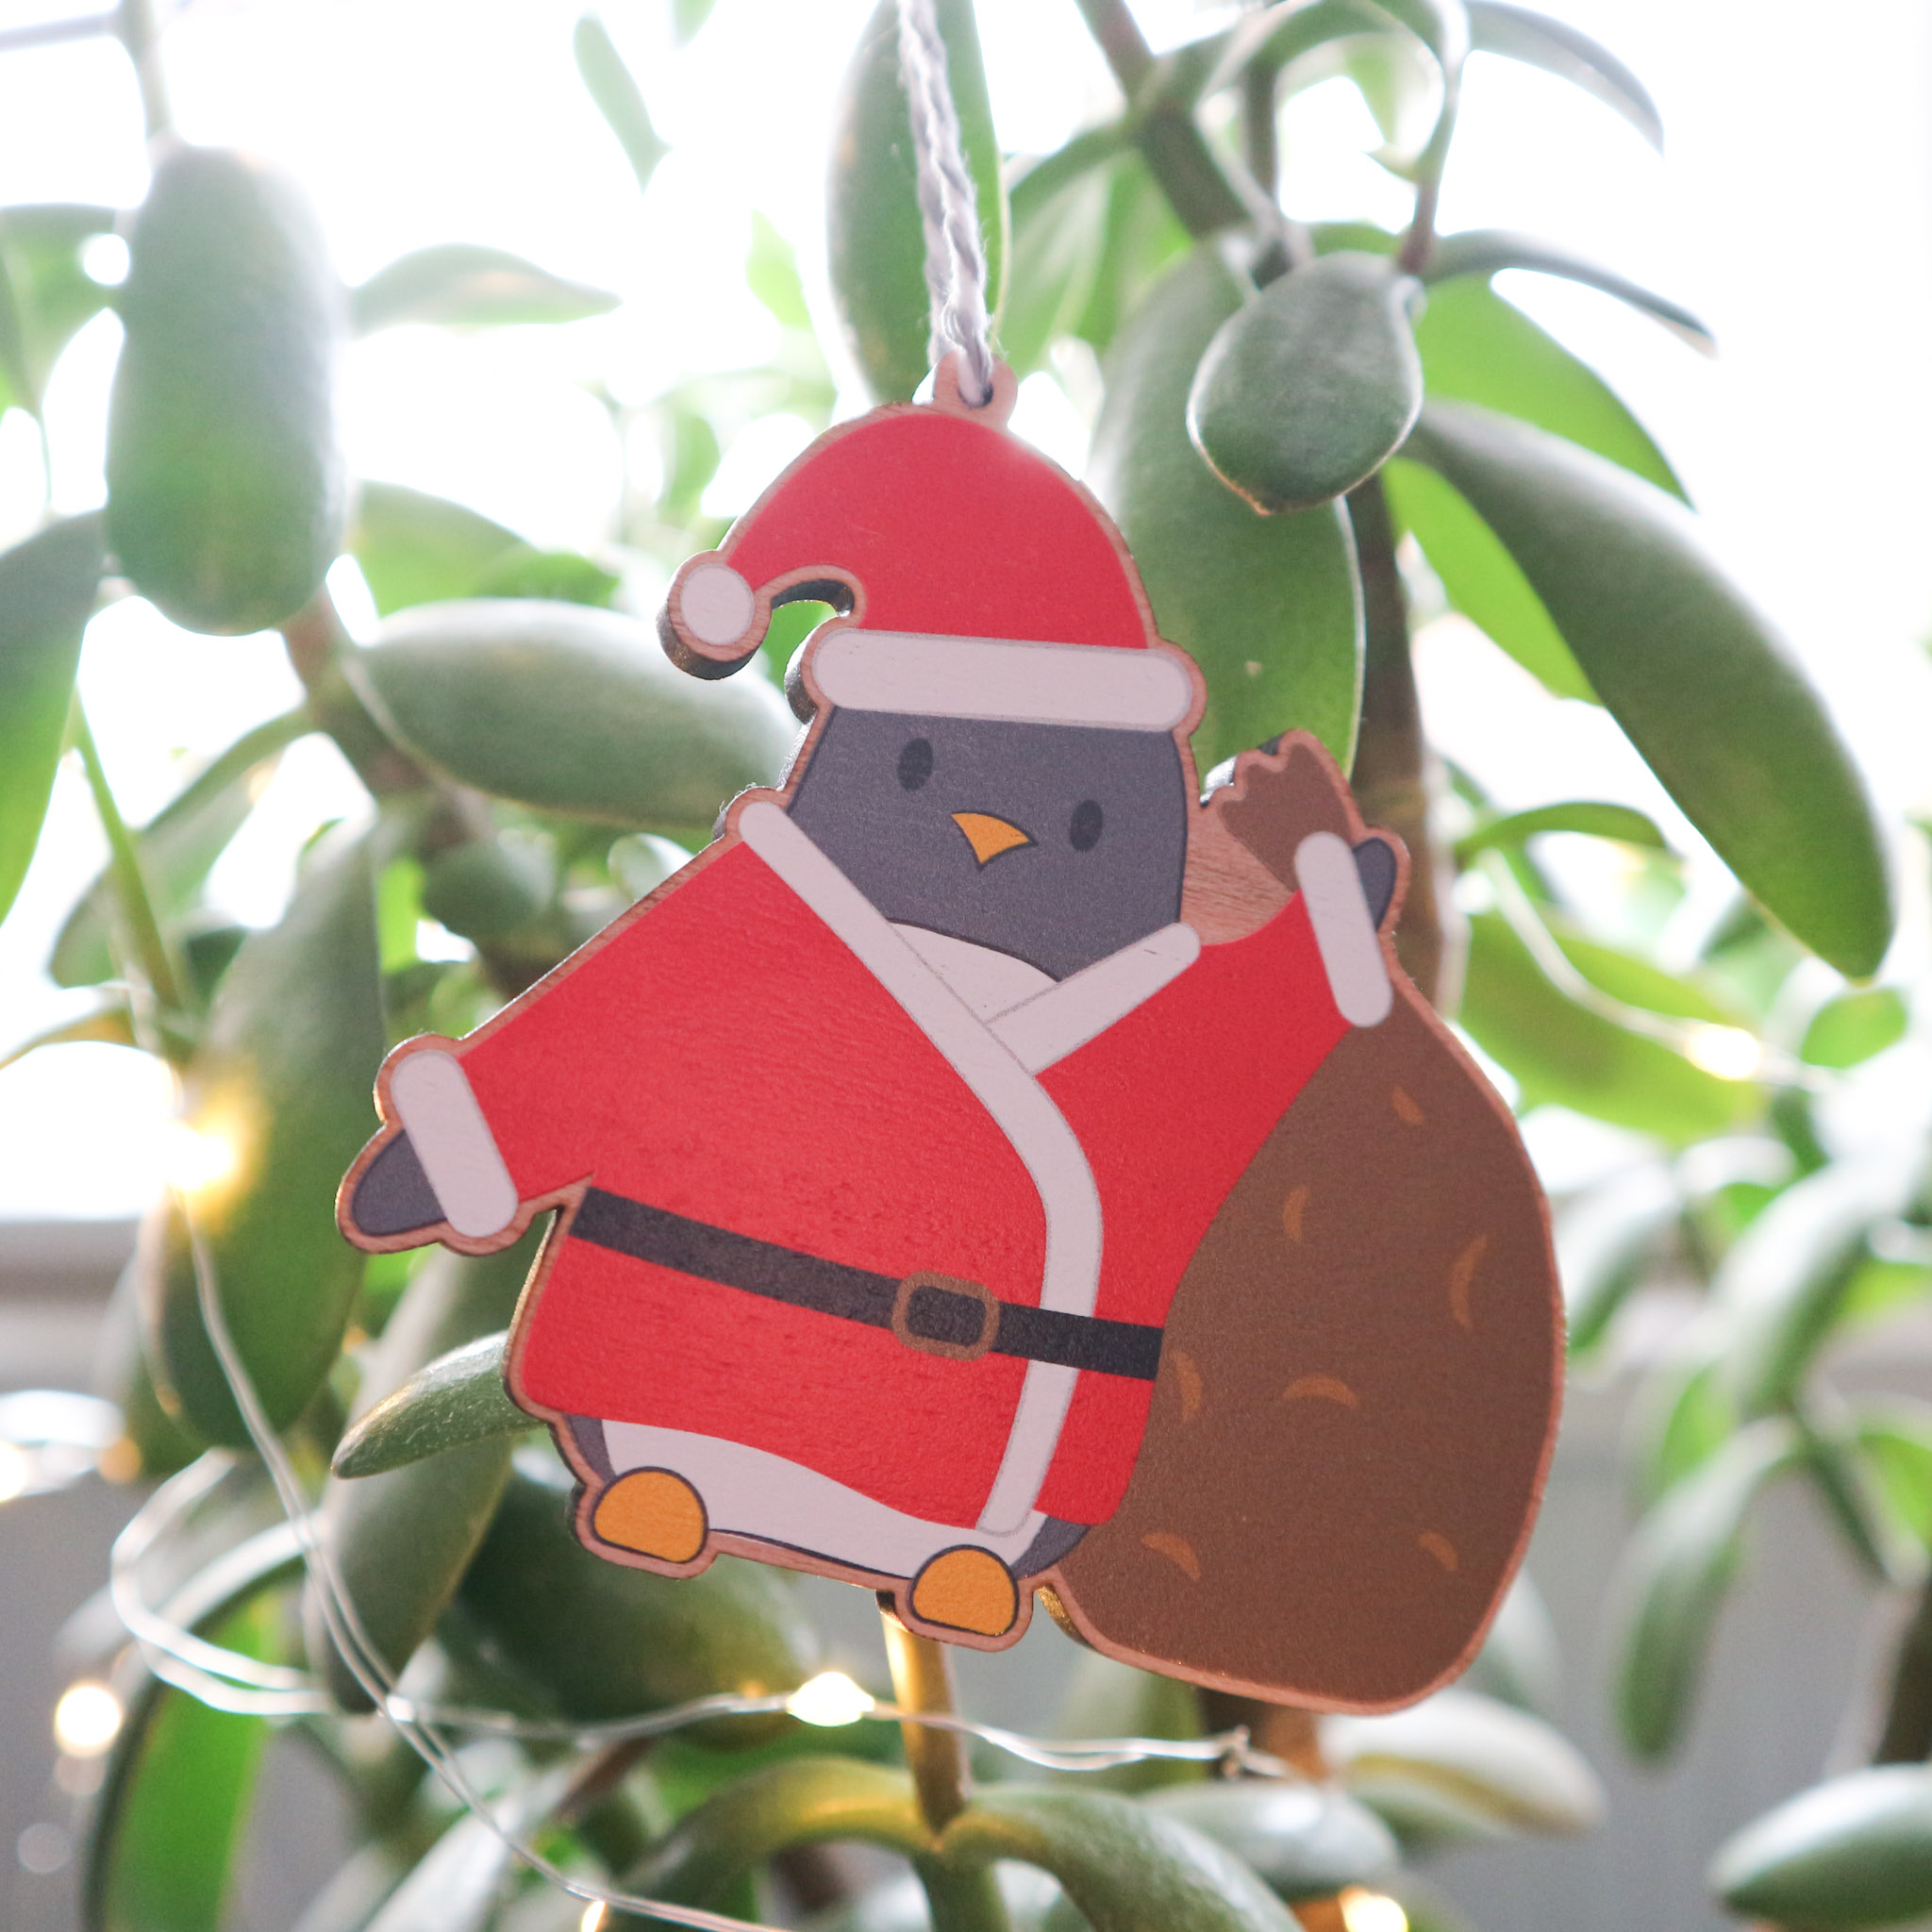 An illustrated wooden Christmas decoration is hanging on a leafy green plant surrounded by fairy lights. The illustration is of a cute penguin dressed as Father Christmas and is holding a sack full of gifts.